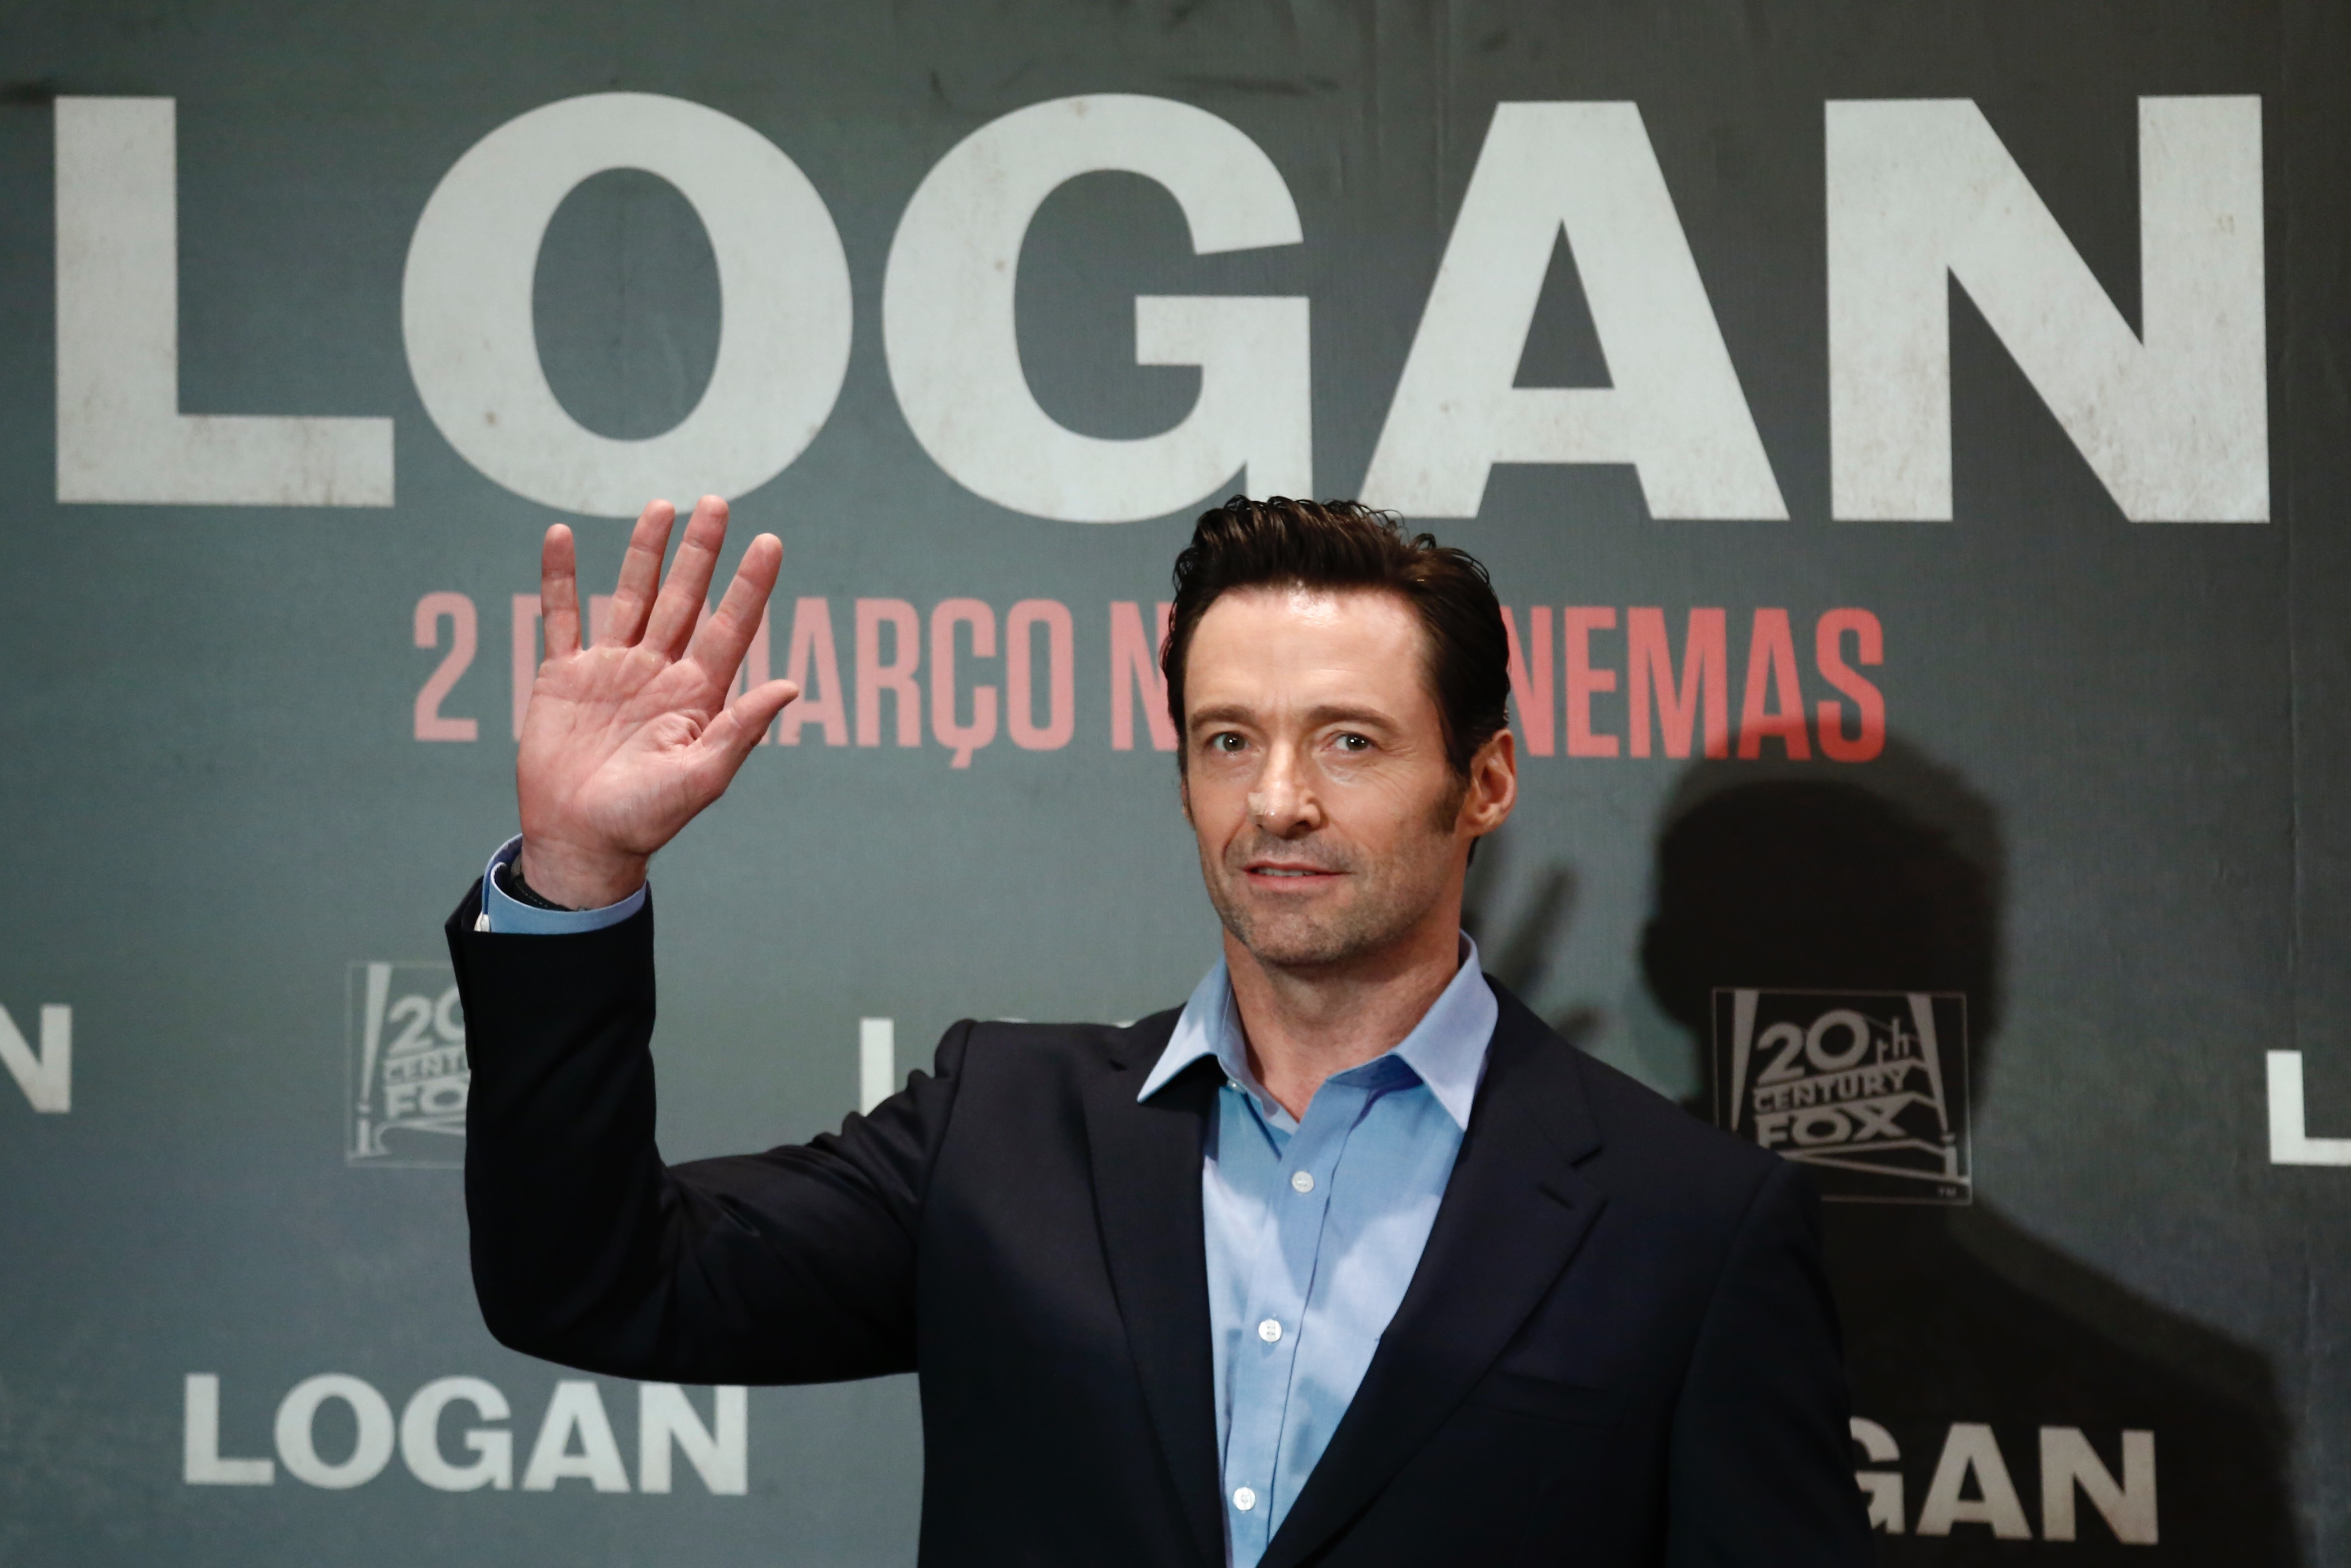 Logan Marvels R rated Wolverine movie slashes March box office